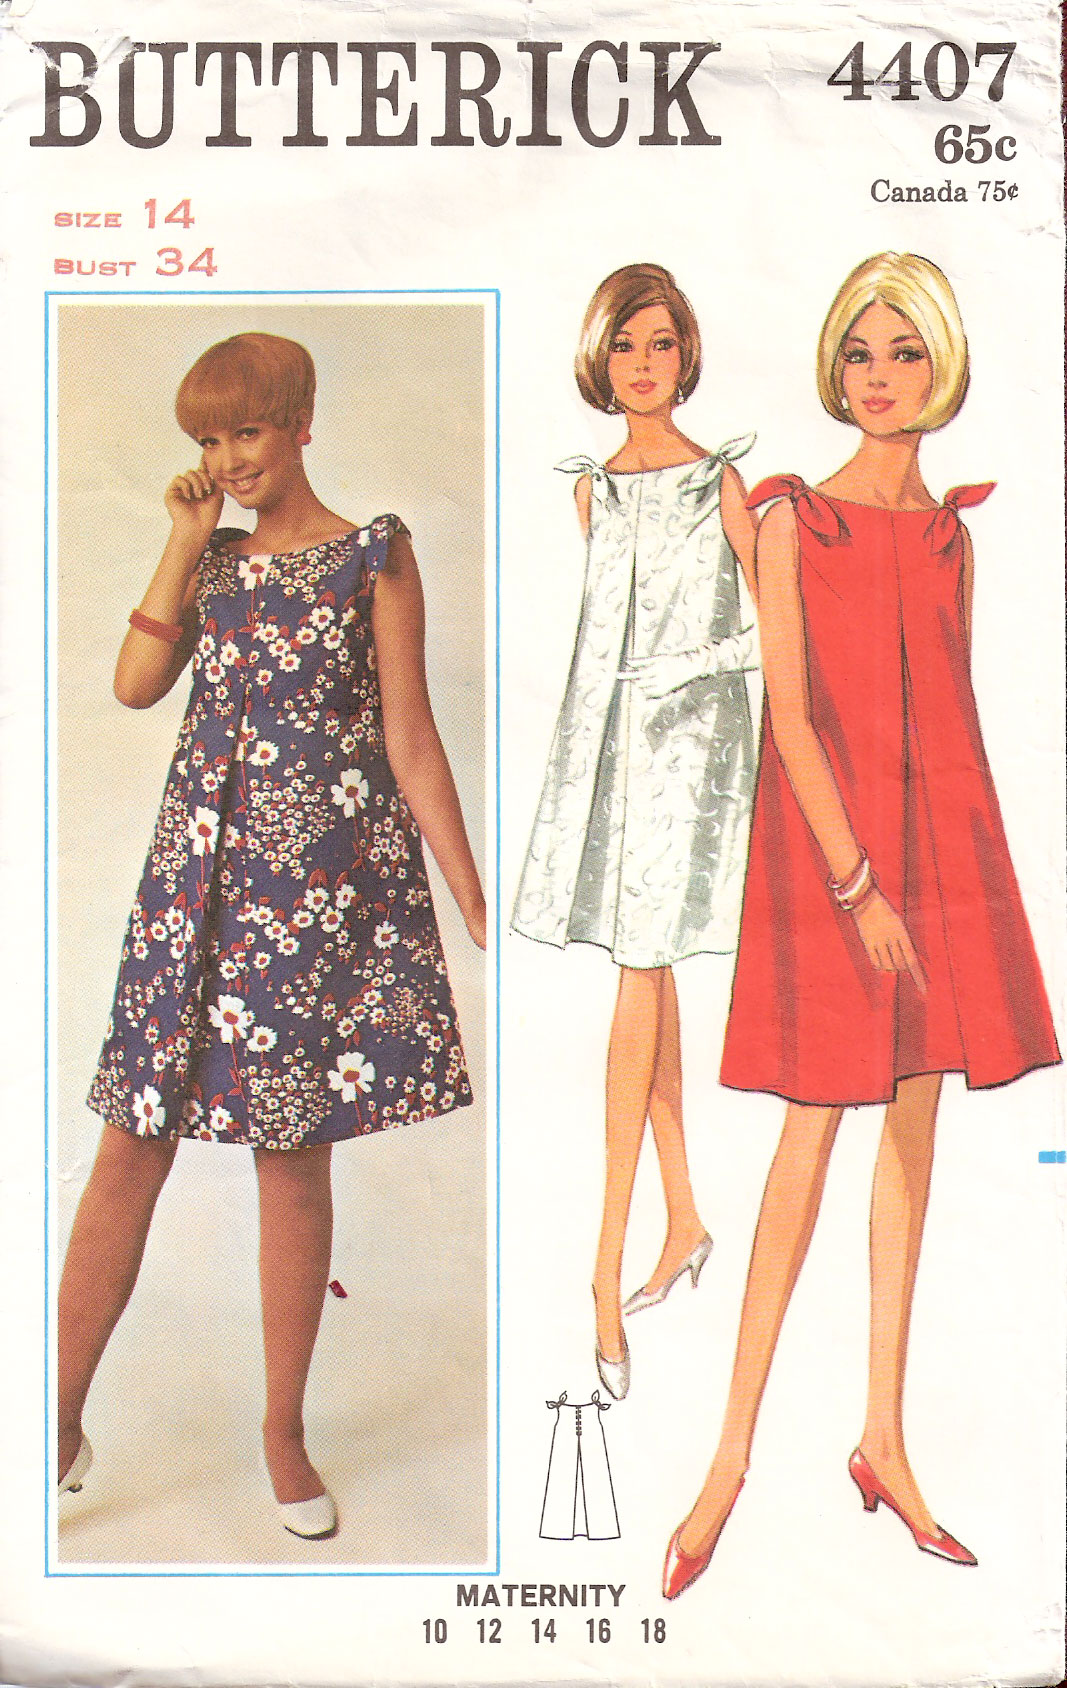 Butterick 4407 vintage sewing patterns fandom powered by wikia ombrellifo Gallery